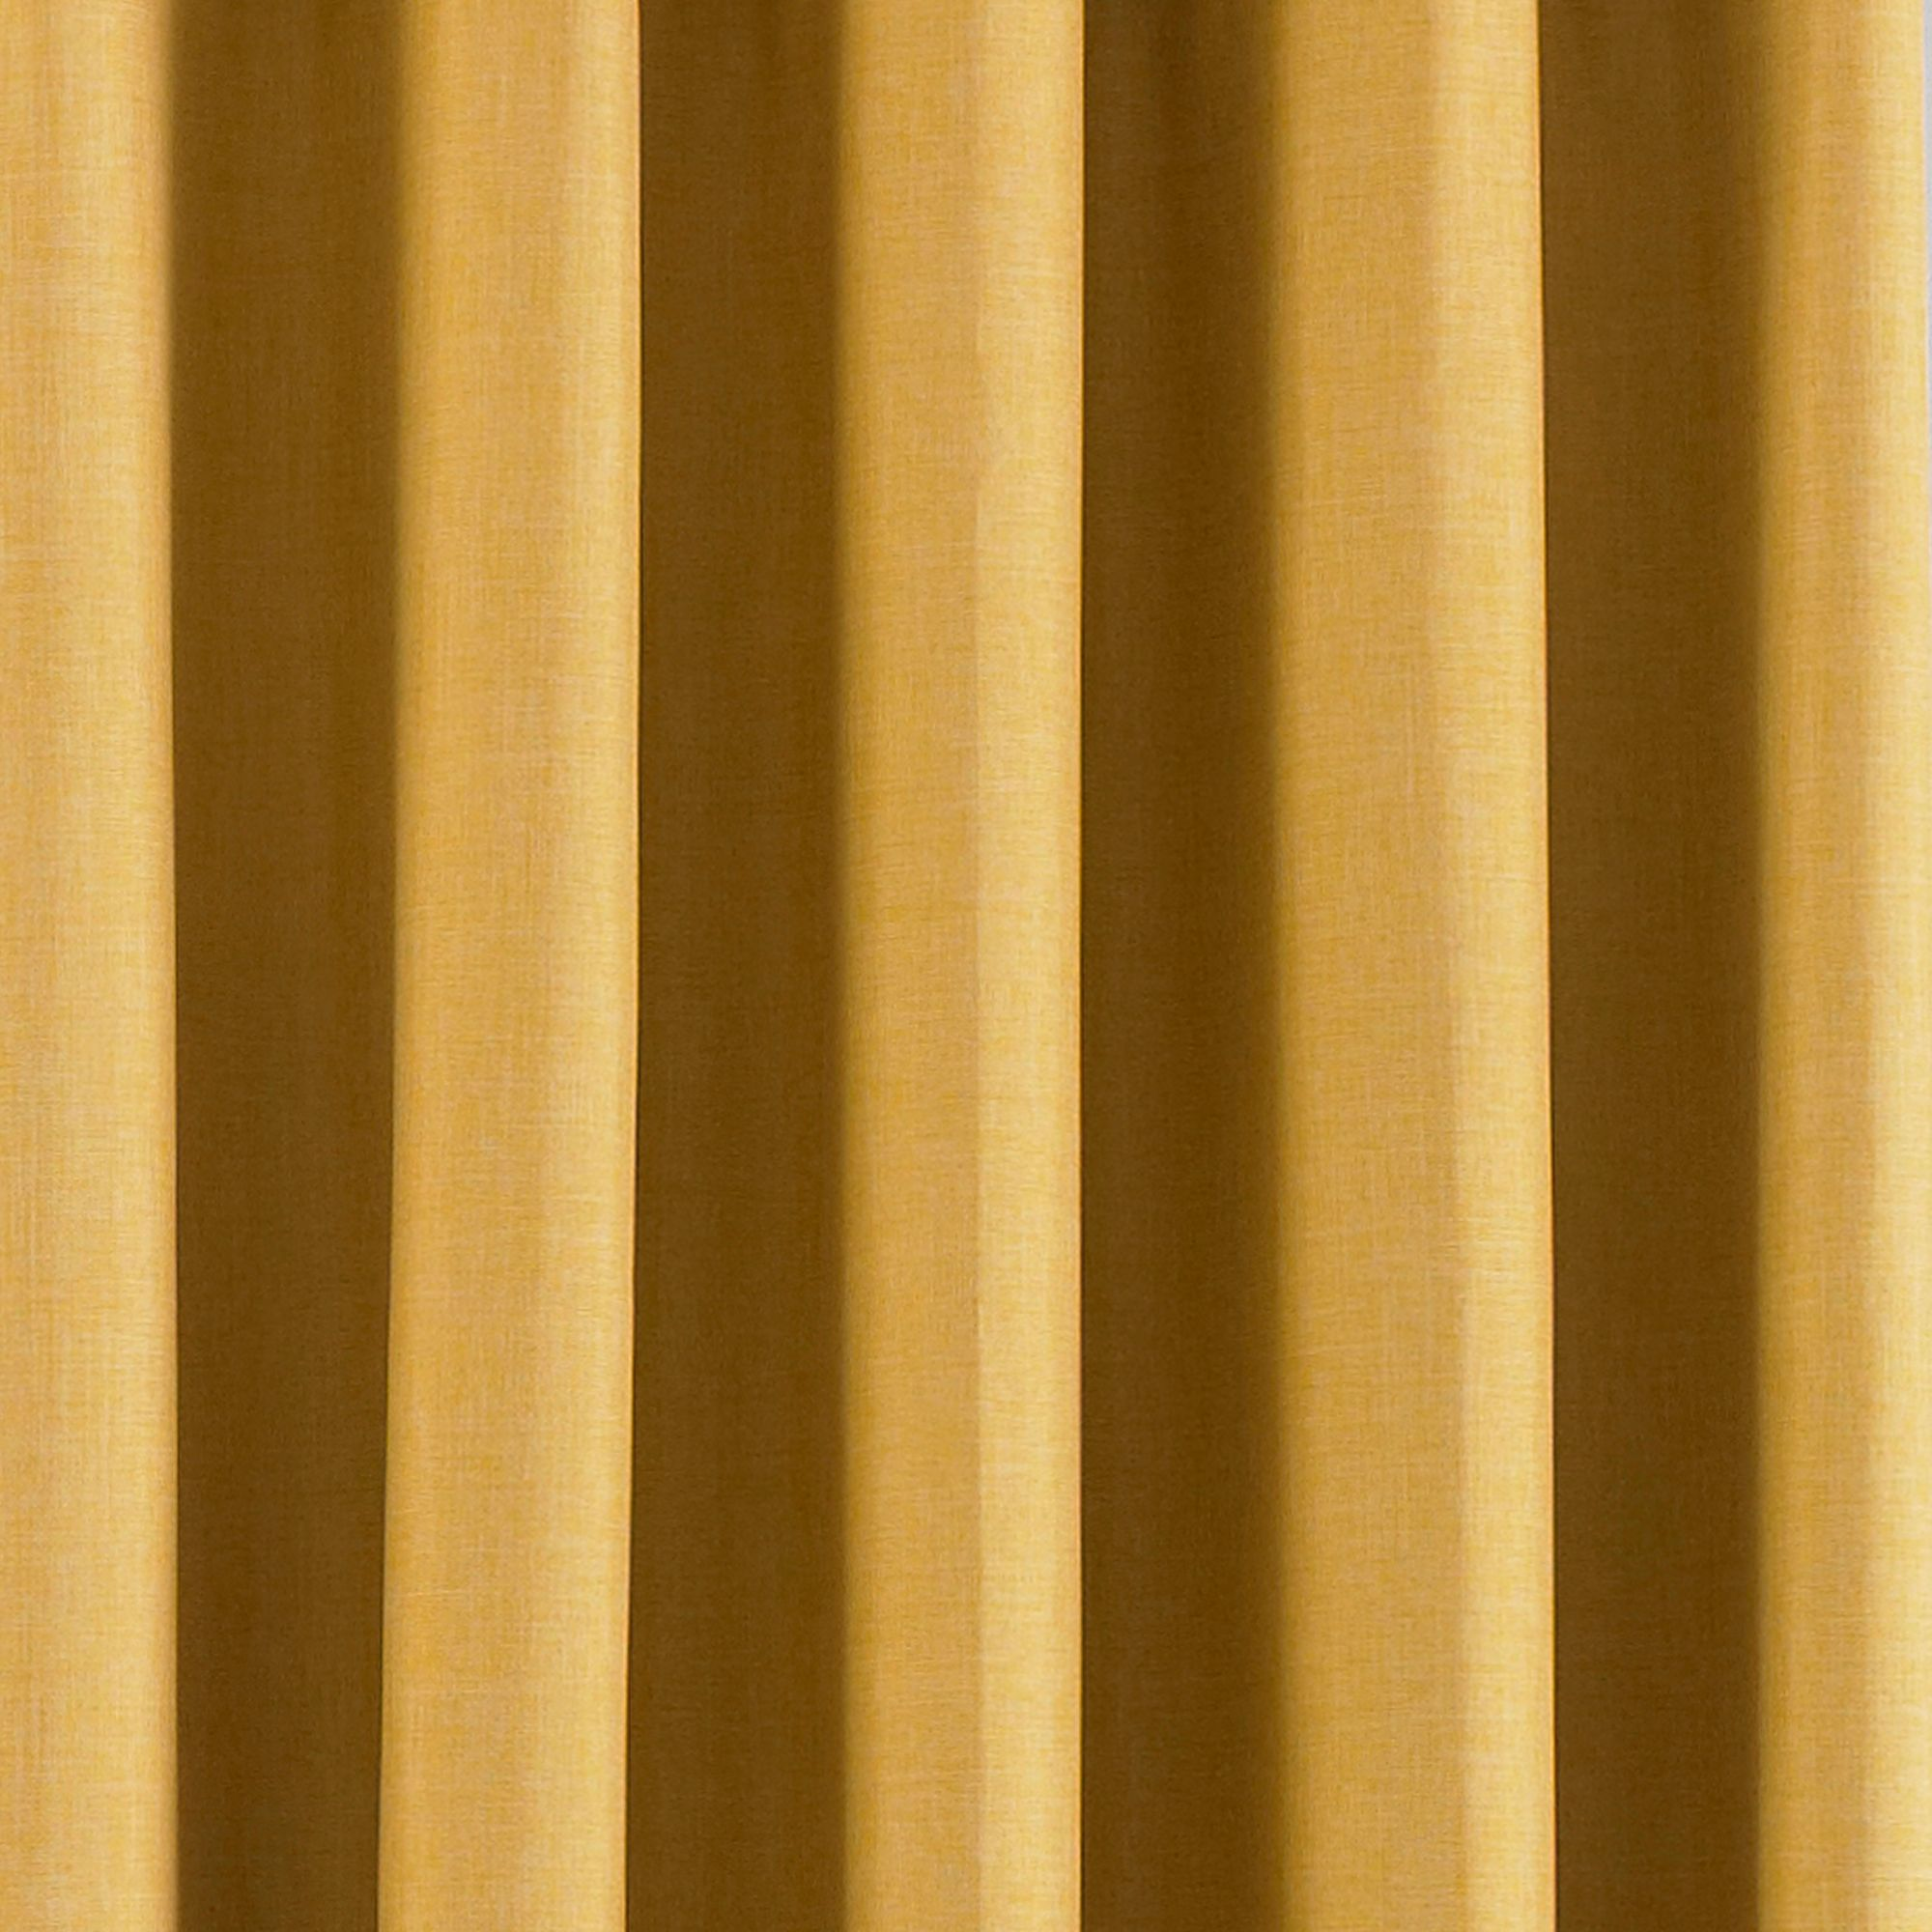 Eclipse Blackout Eyelet Curtains in Ochre